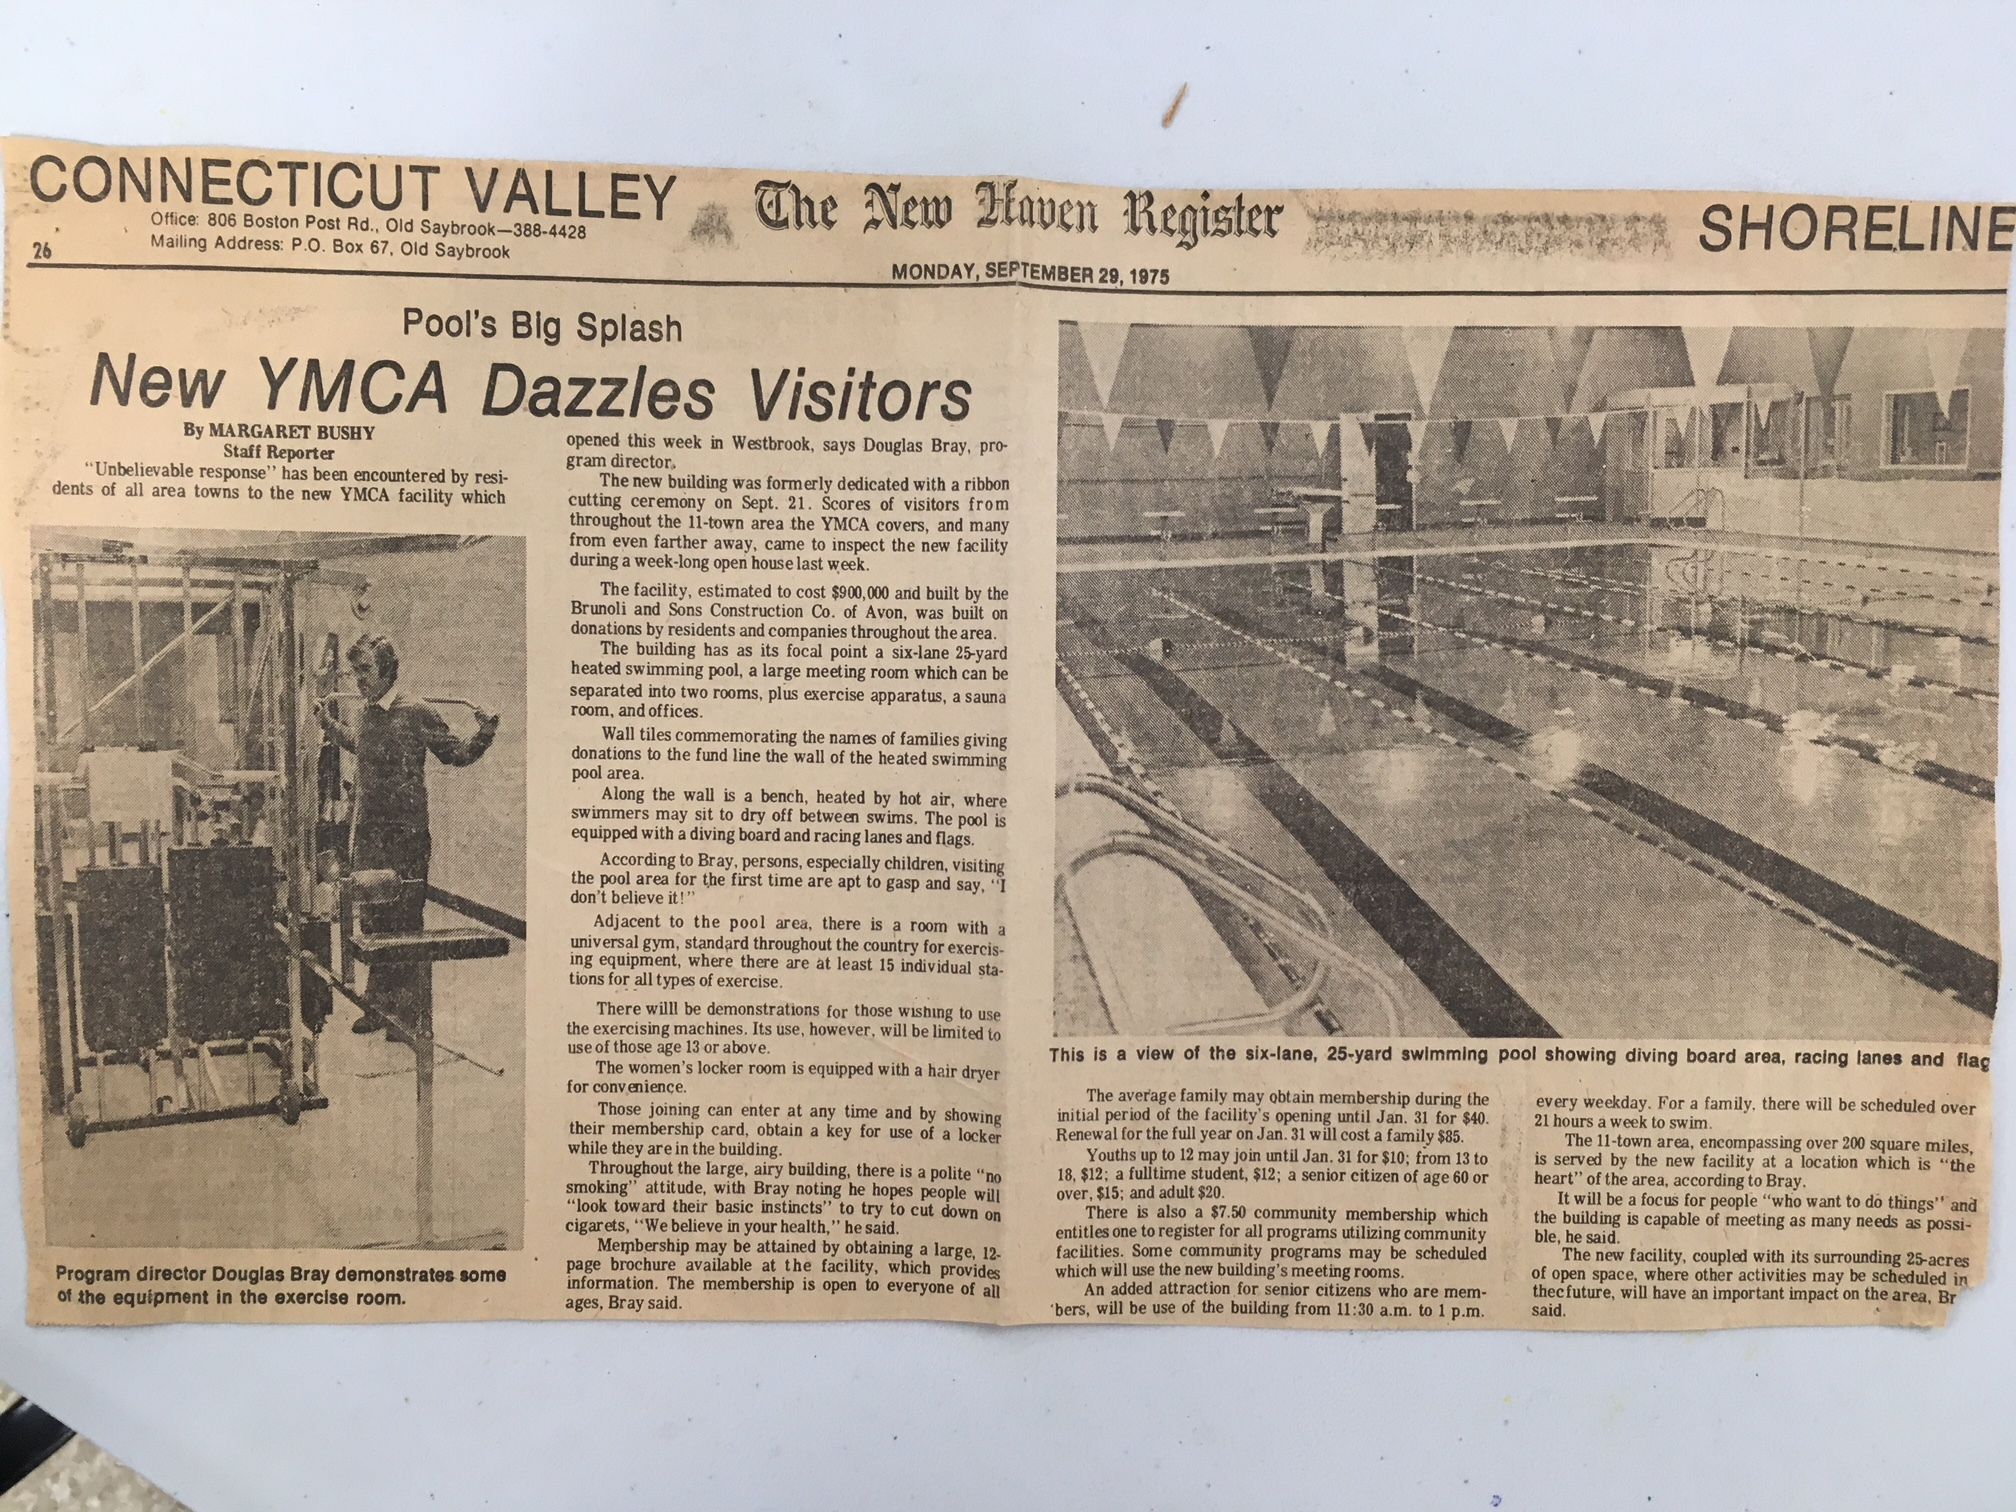 1970s The new YMCA Dazzles